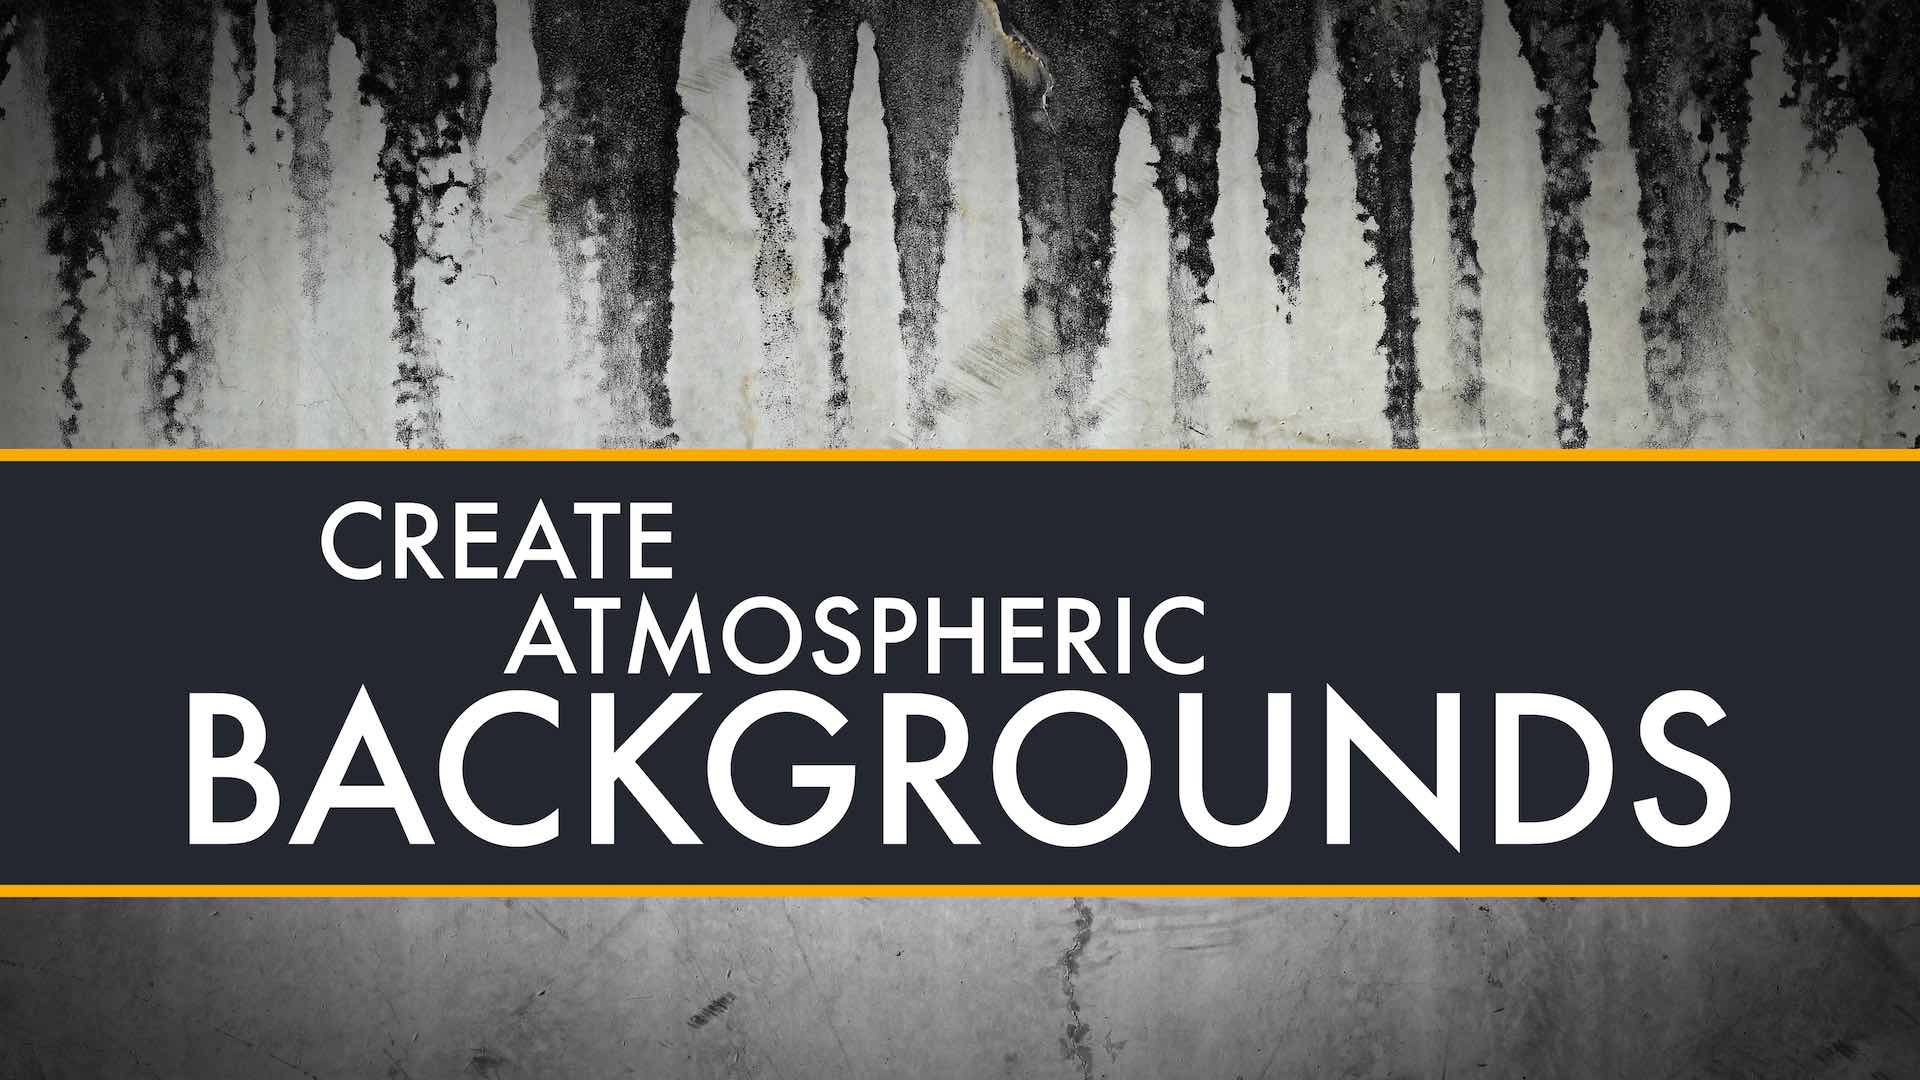 Create atmospheric backgrounds